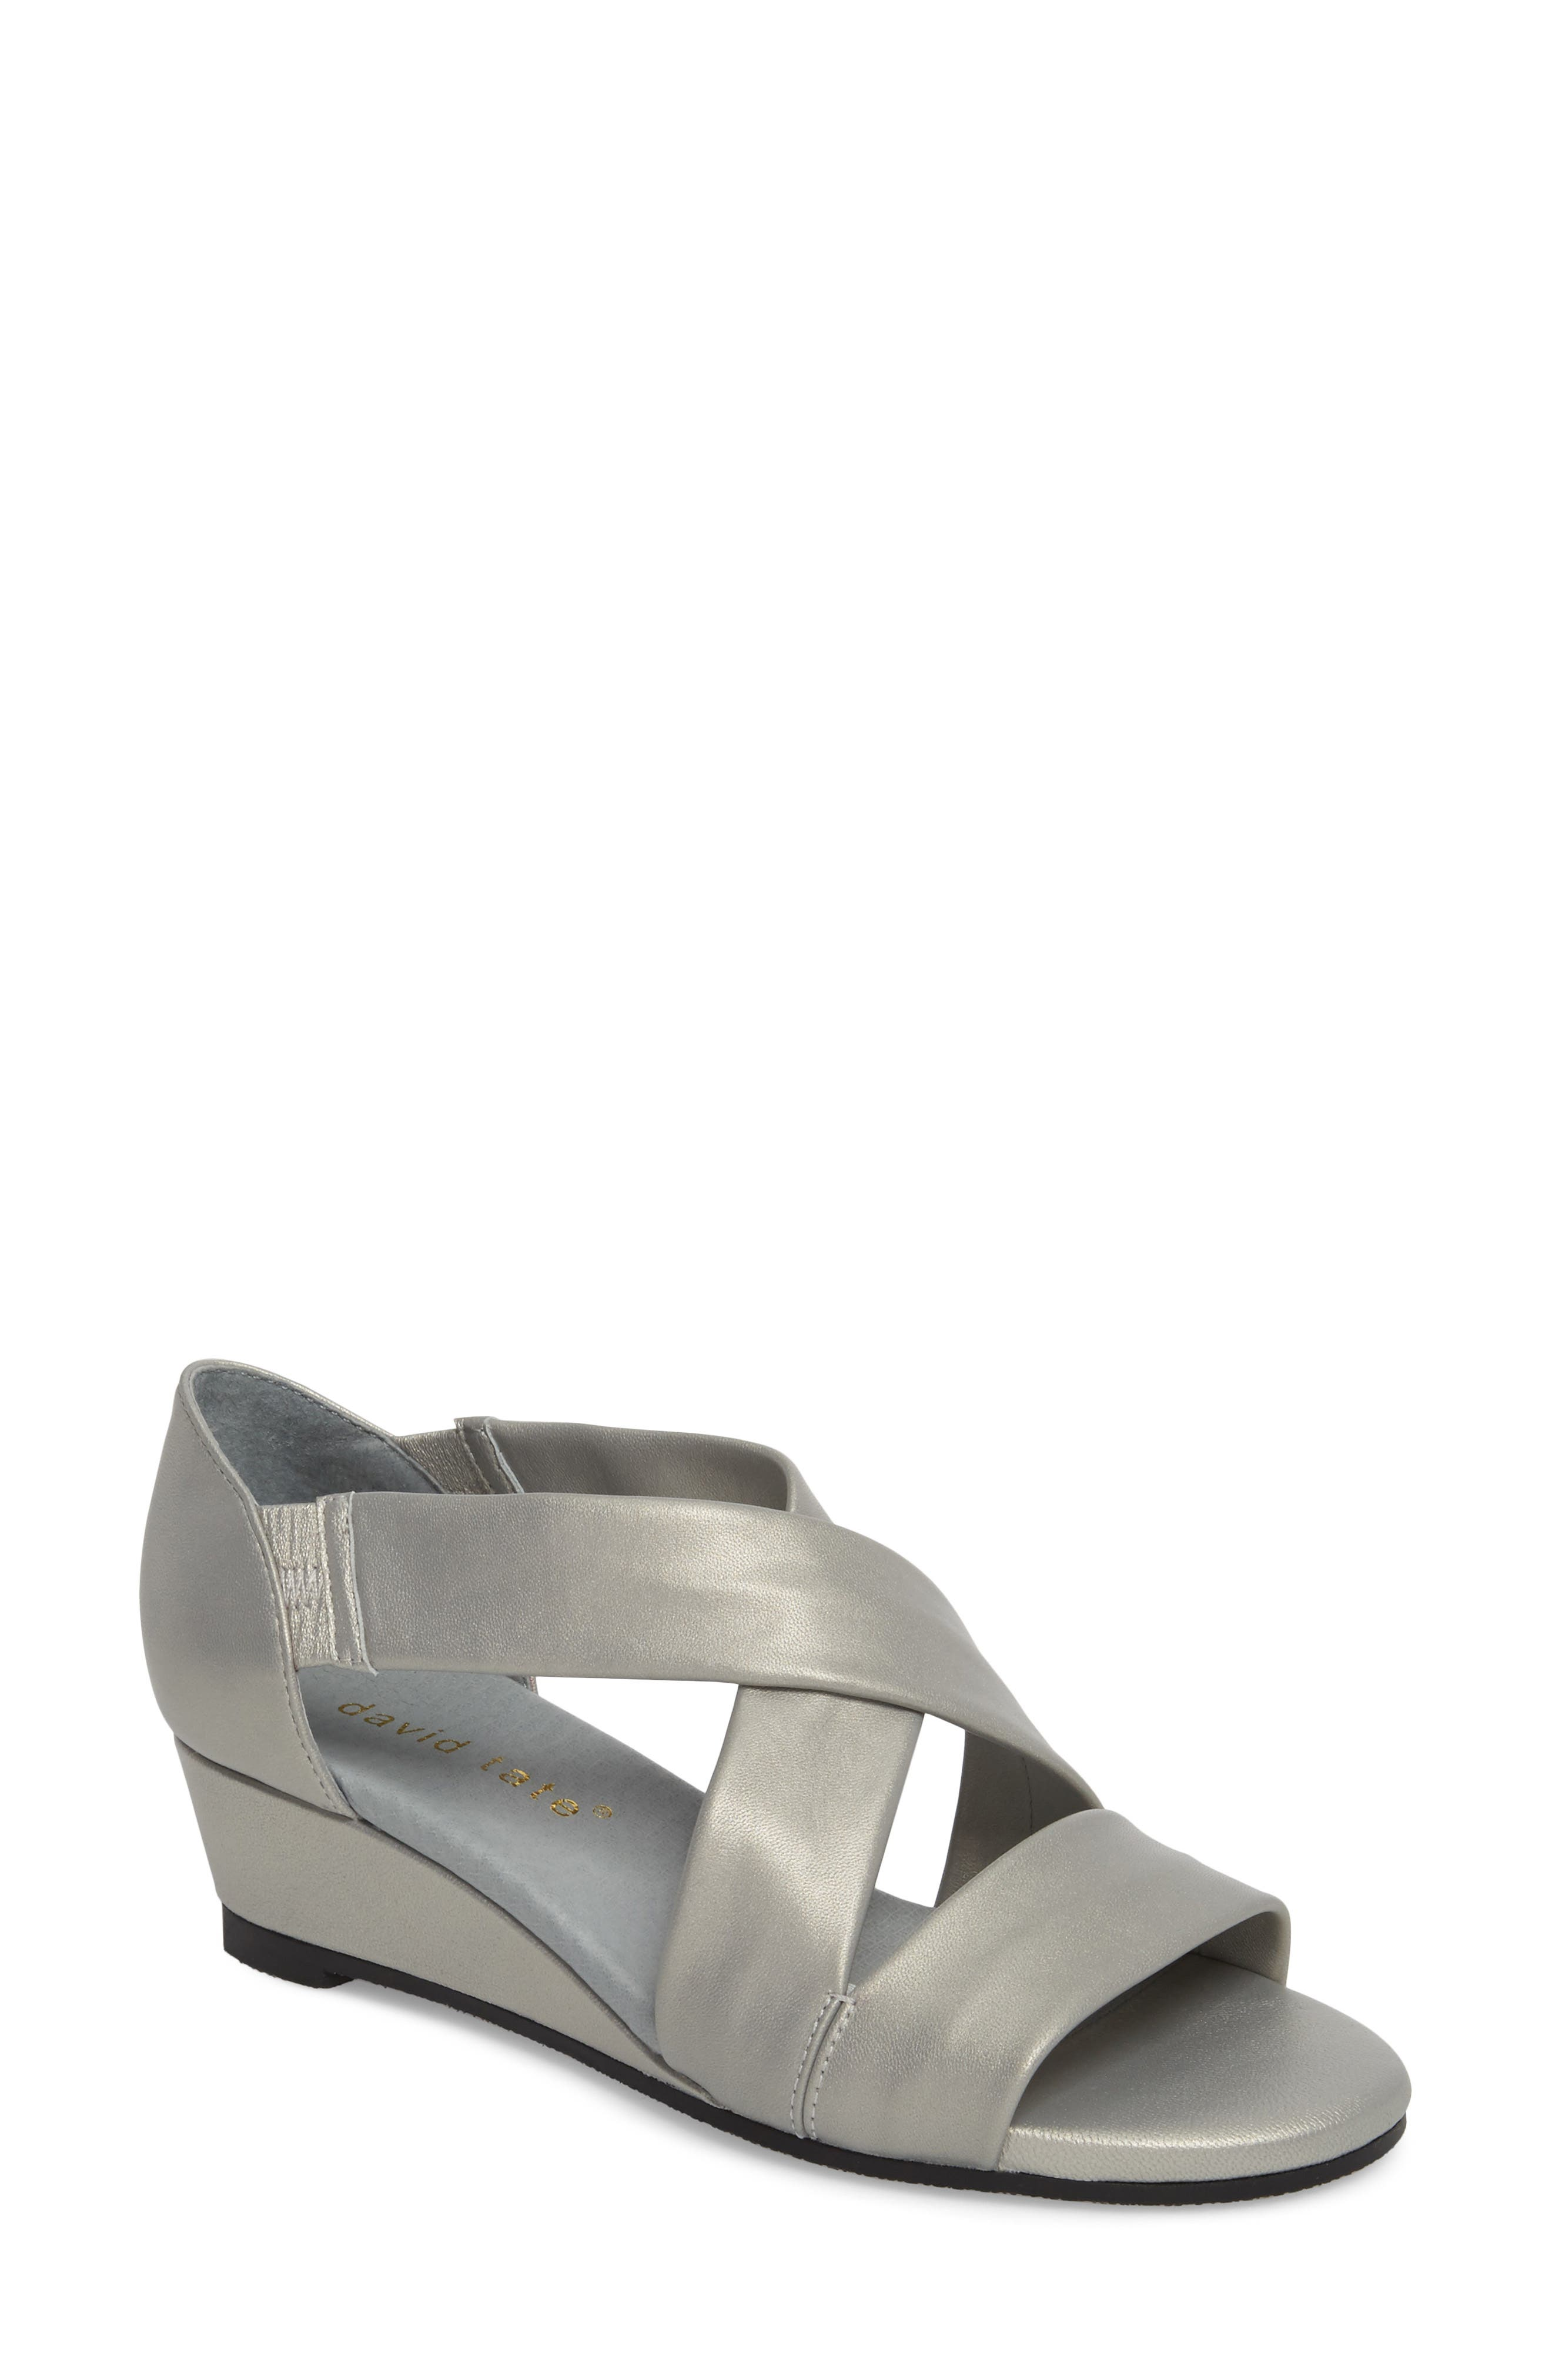 DAVID TATE Swell Cross Strap Wedge Sandal, Main, color, SILVER LEATHER